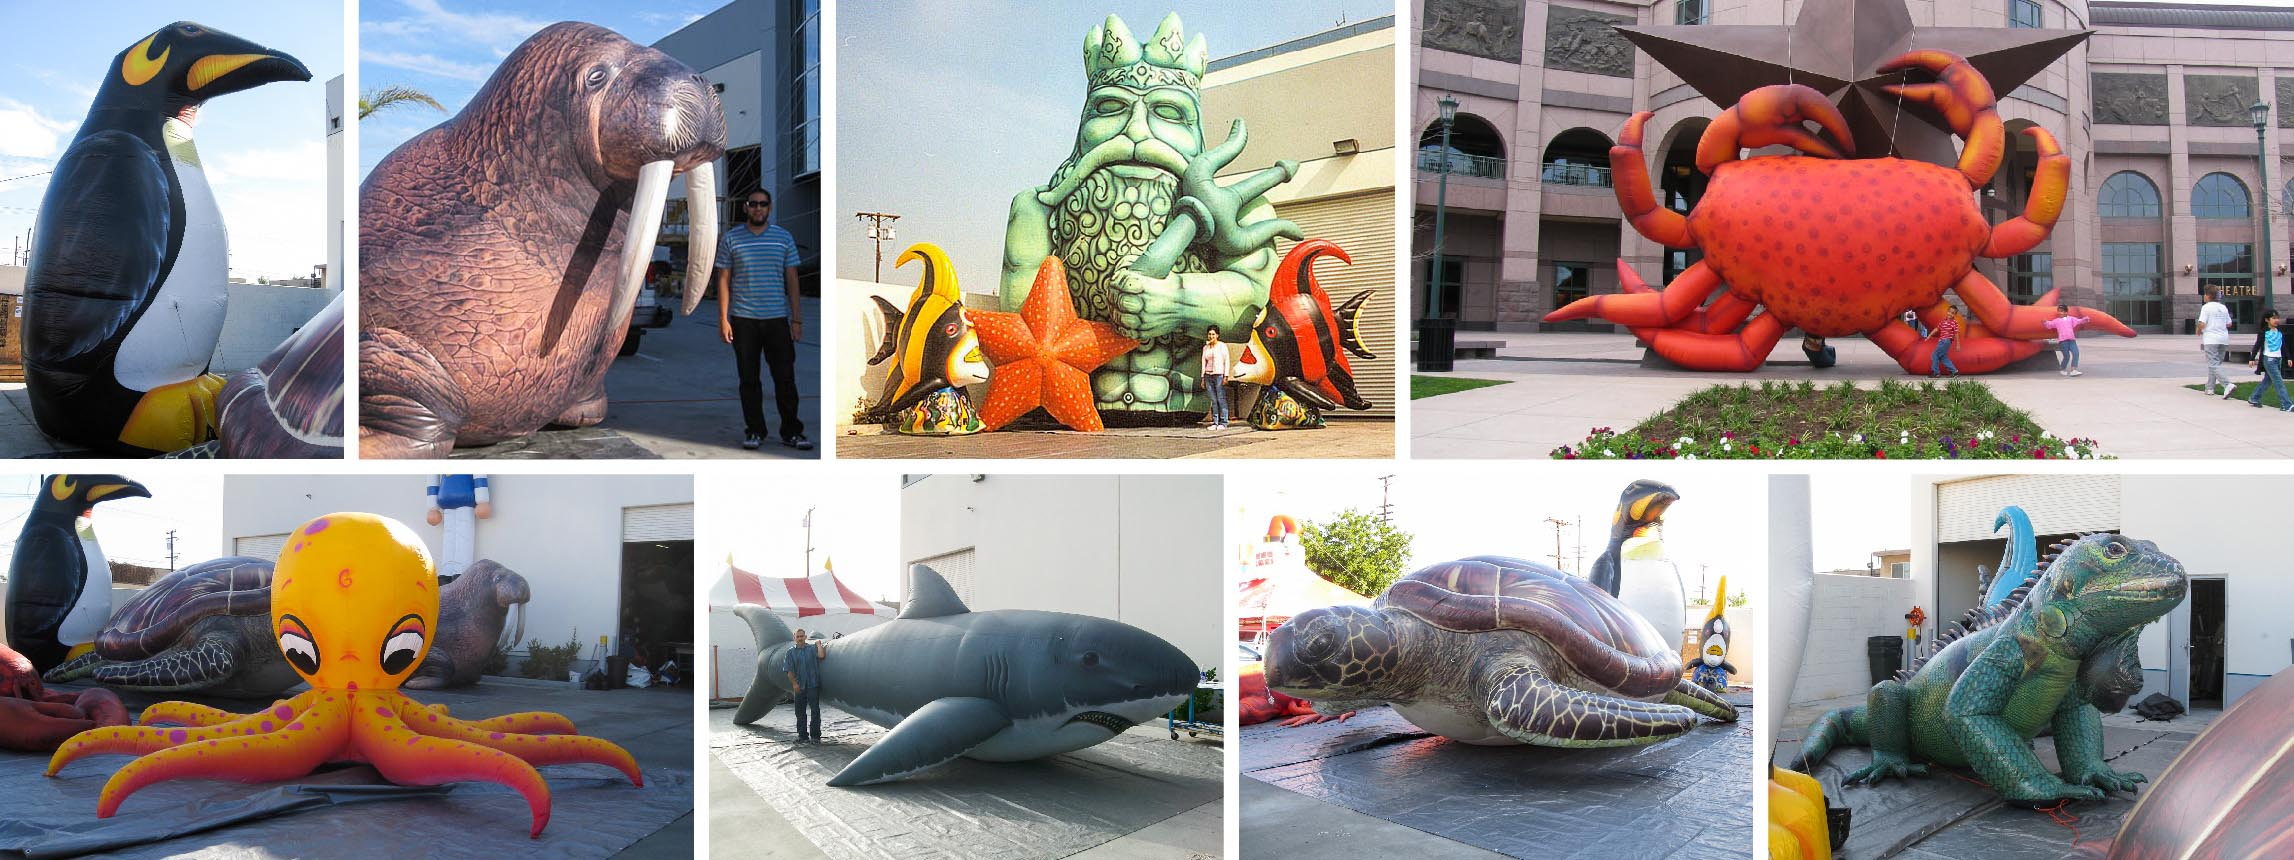 Oceanic-inflatables-collage